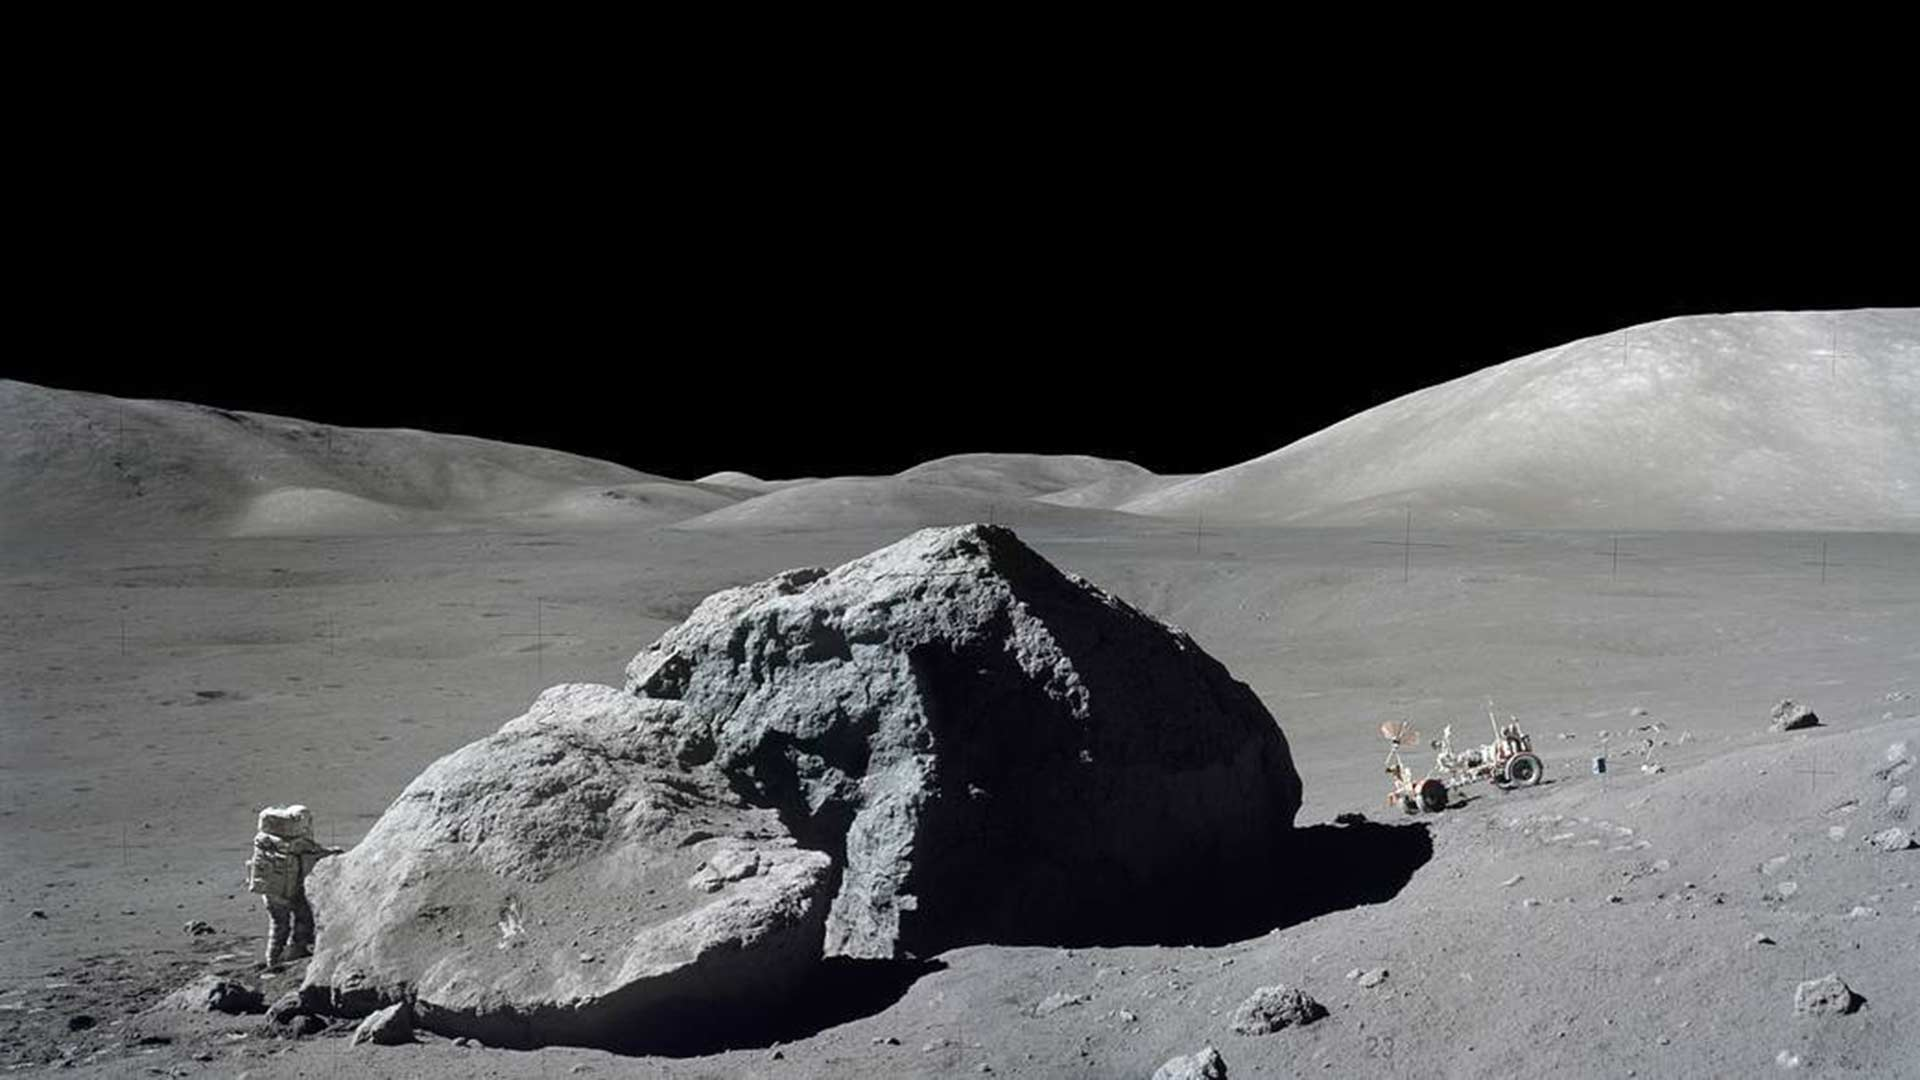 Harrison H. Schmitt stands next to a split lunar boulder on the Apollo 17 mission in this photo from Dec. 13, 1972.